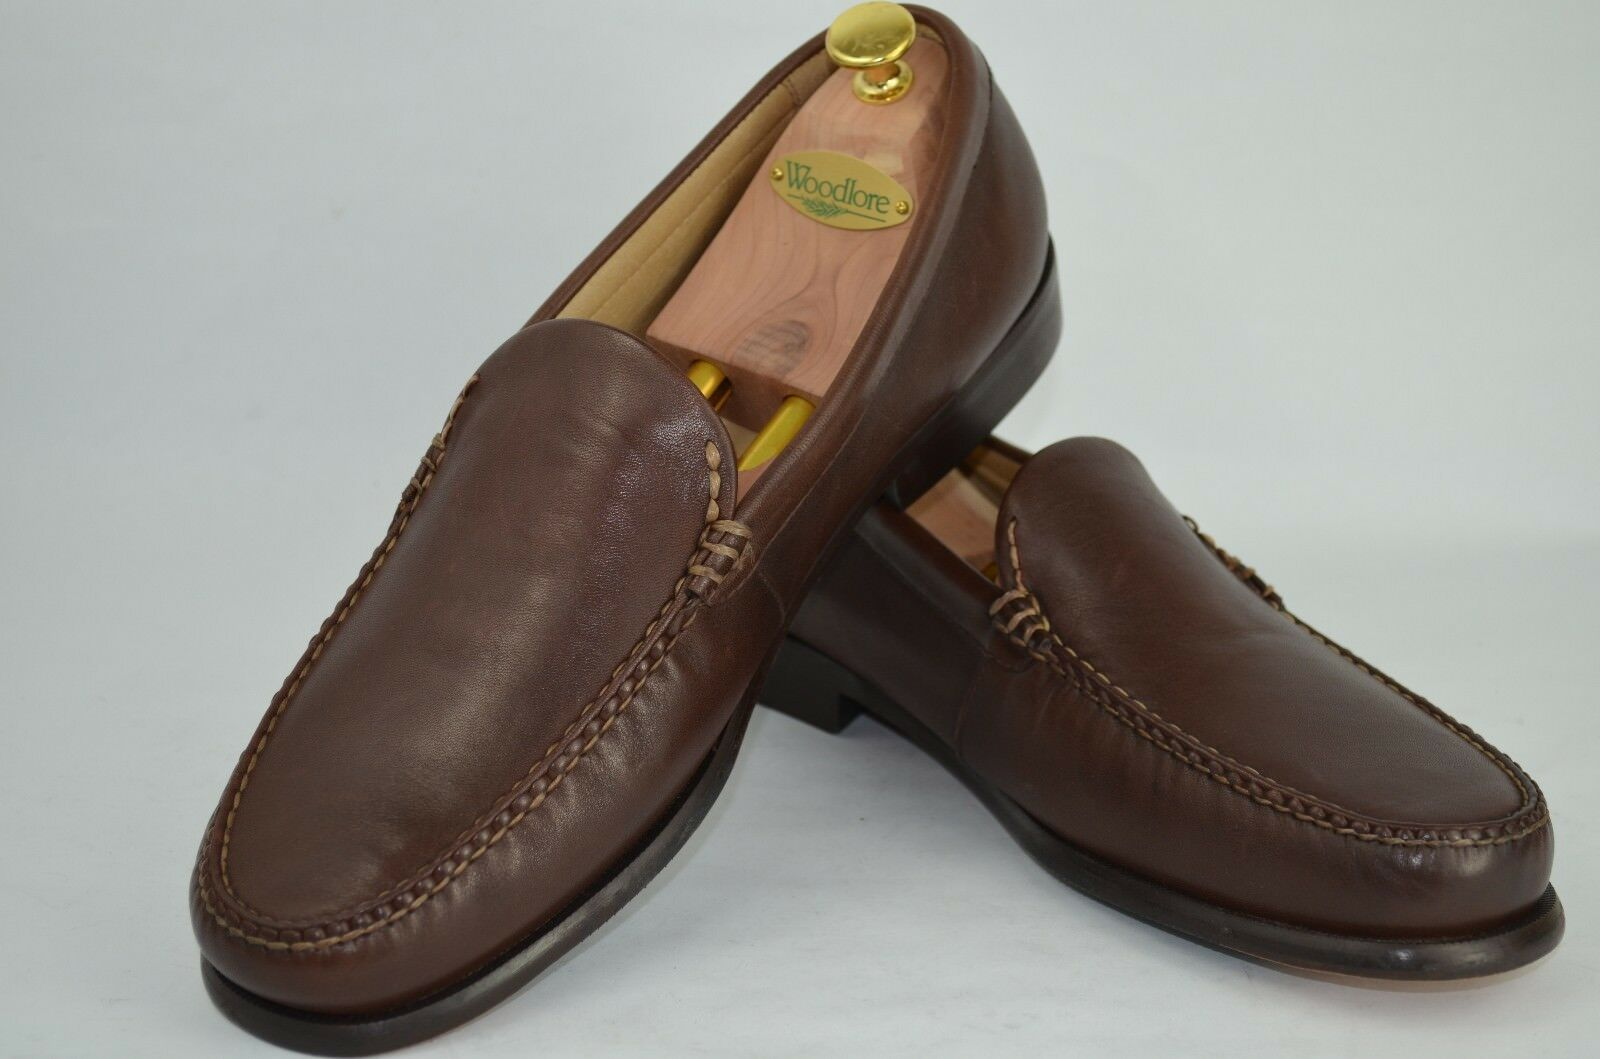 MENS BASS SOFT LEATHER LOAFER-BRONZE STYLE-MOC TOE SIZE 12 M-BROWN-VERY NICE